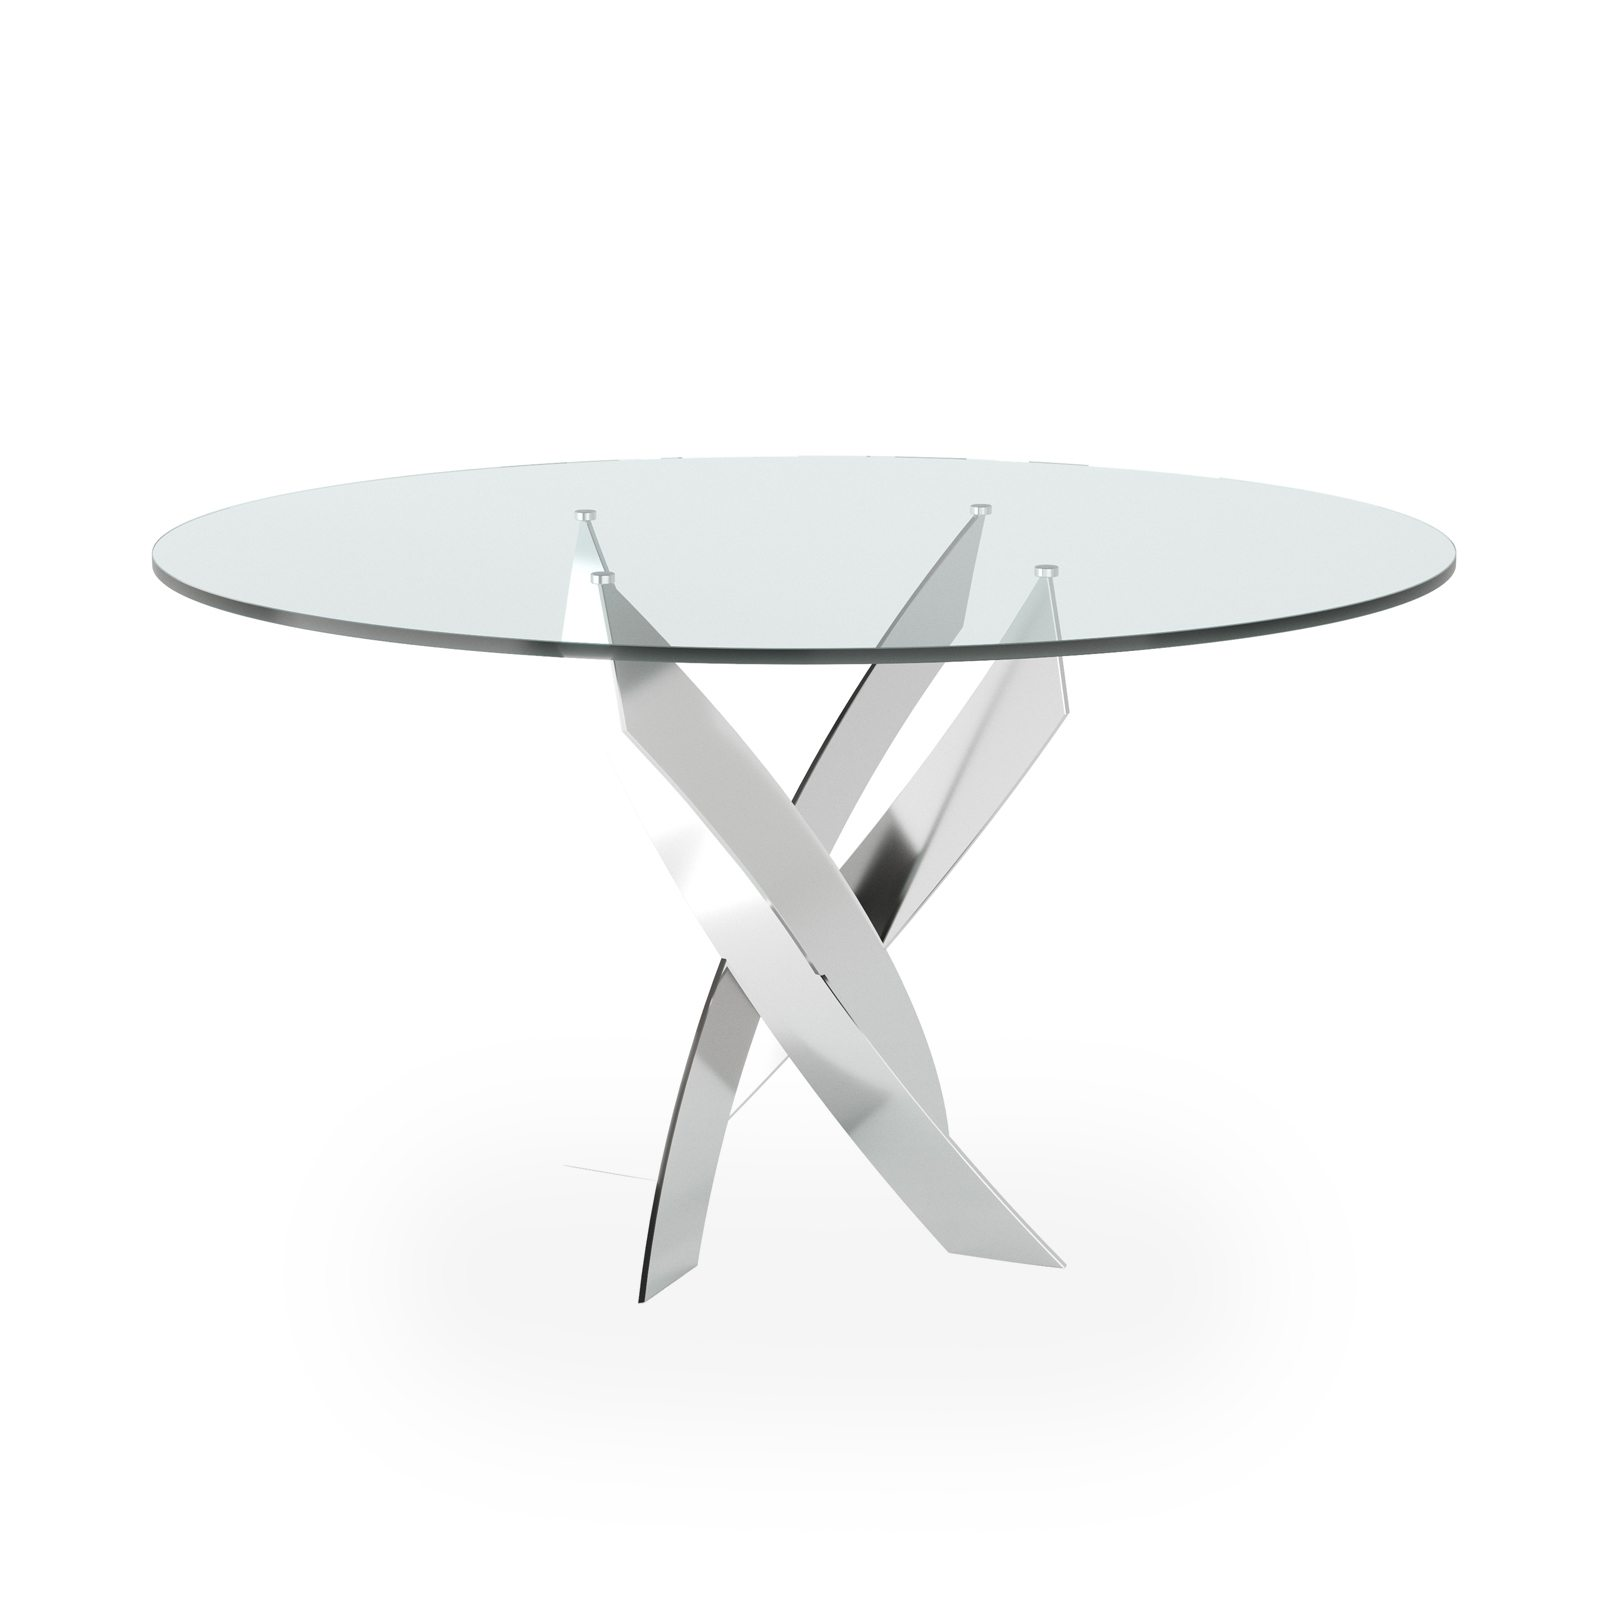 Helix-Dining-Table-Round-Chrome-by-Bonham-&-Bonham-02